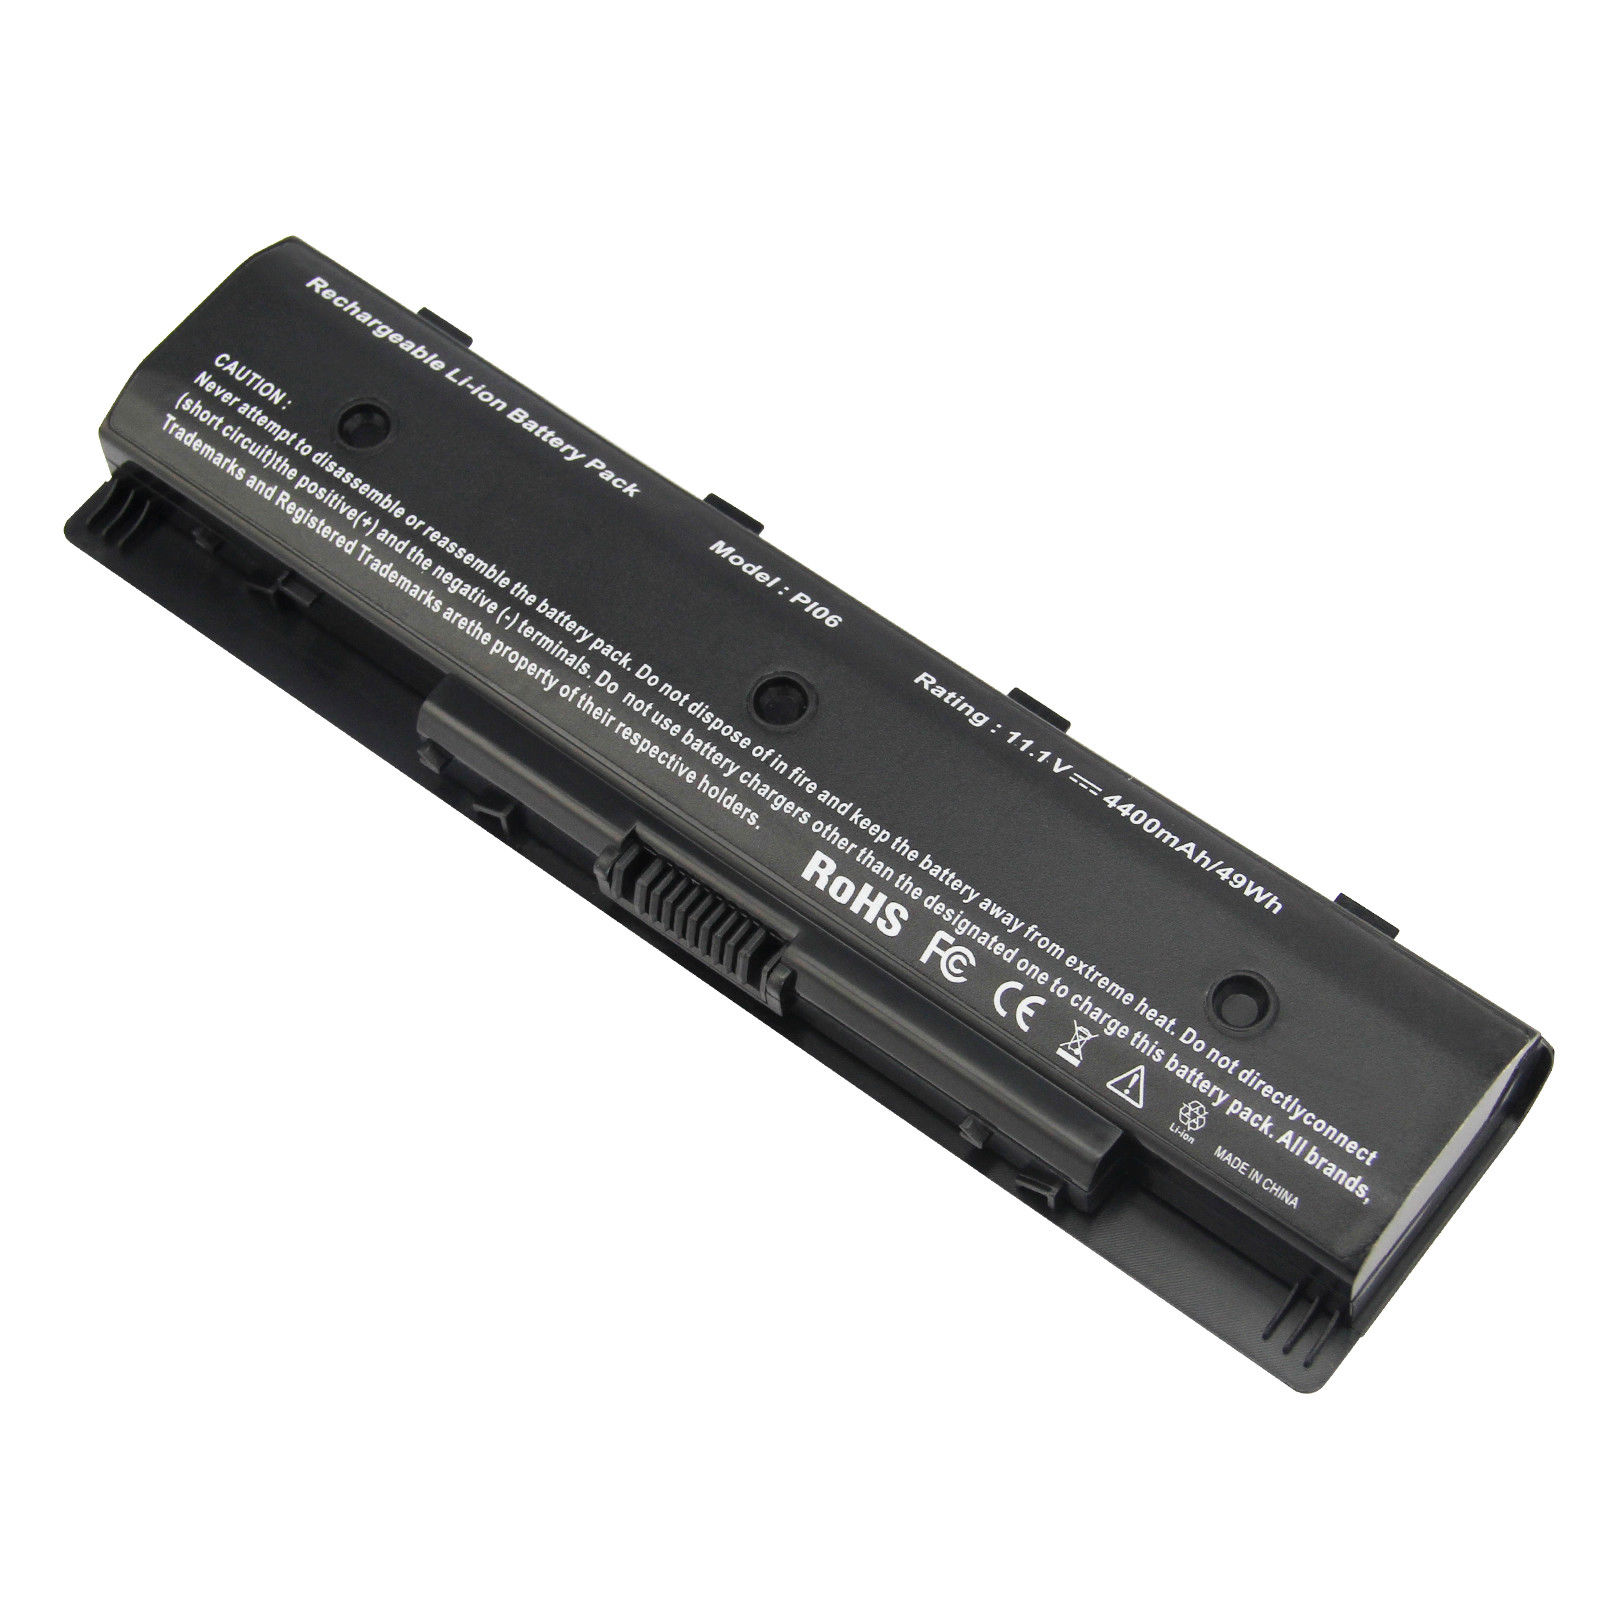 Replacement Hp Envy TouchSmart m7-j09 Battery